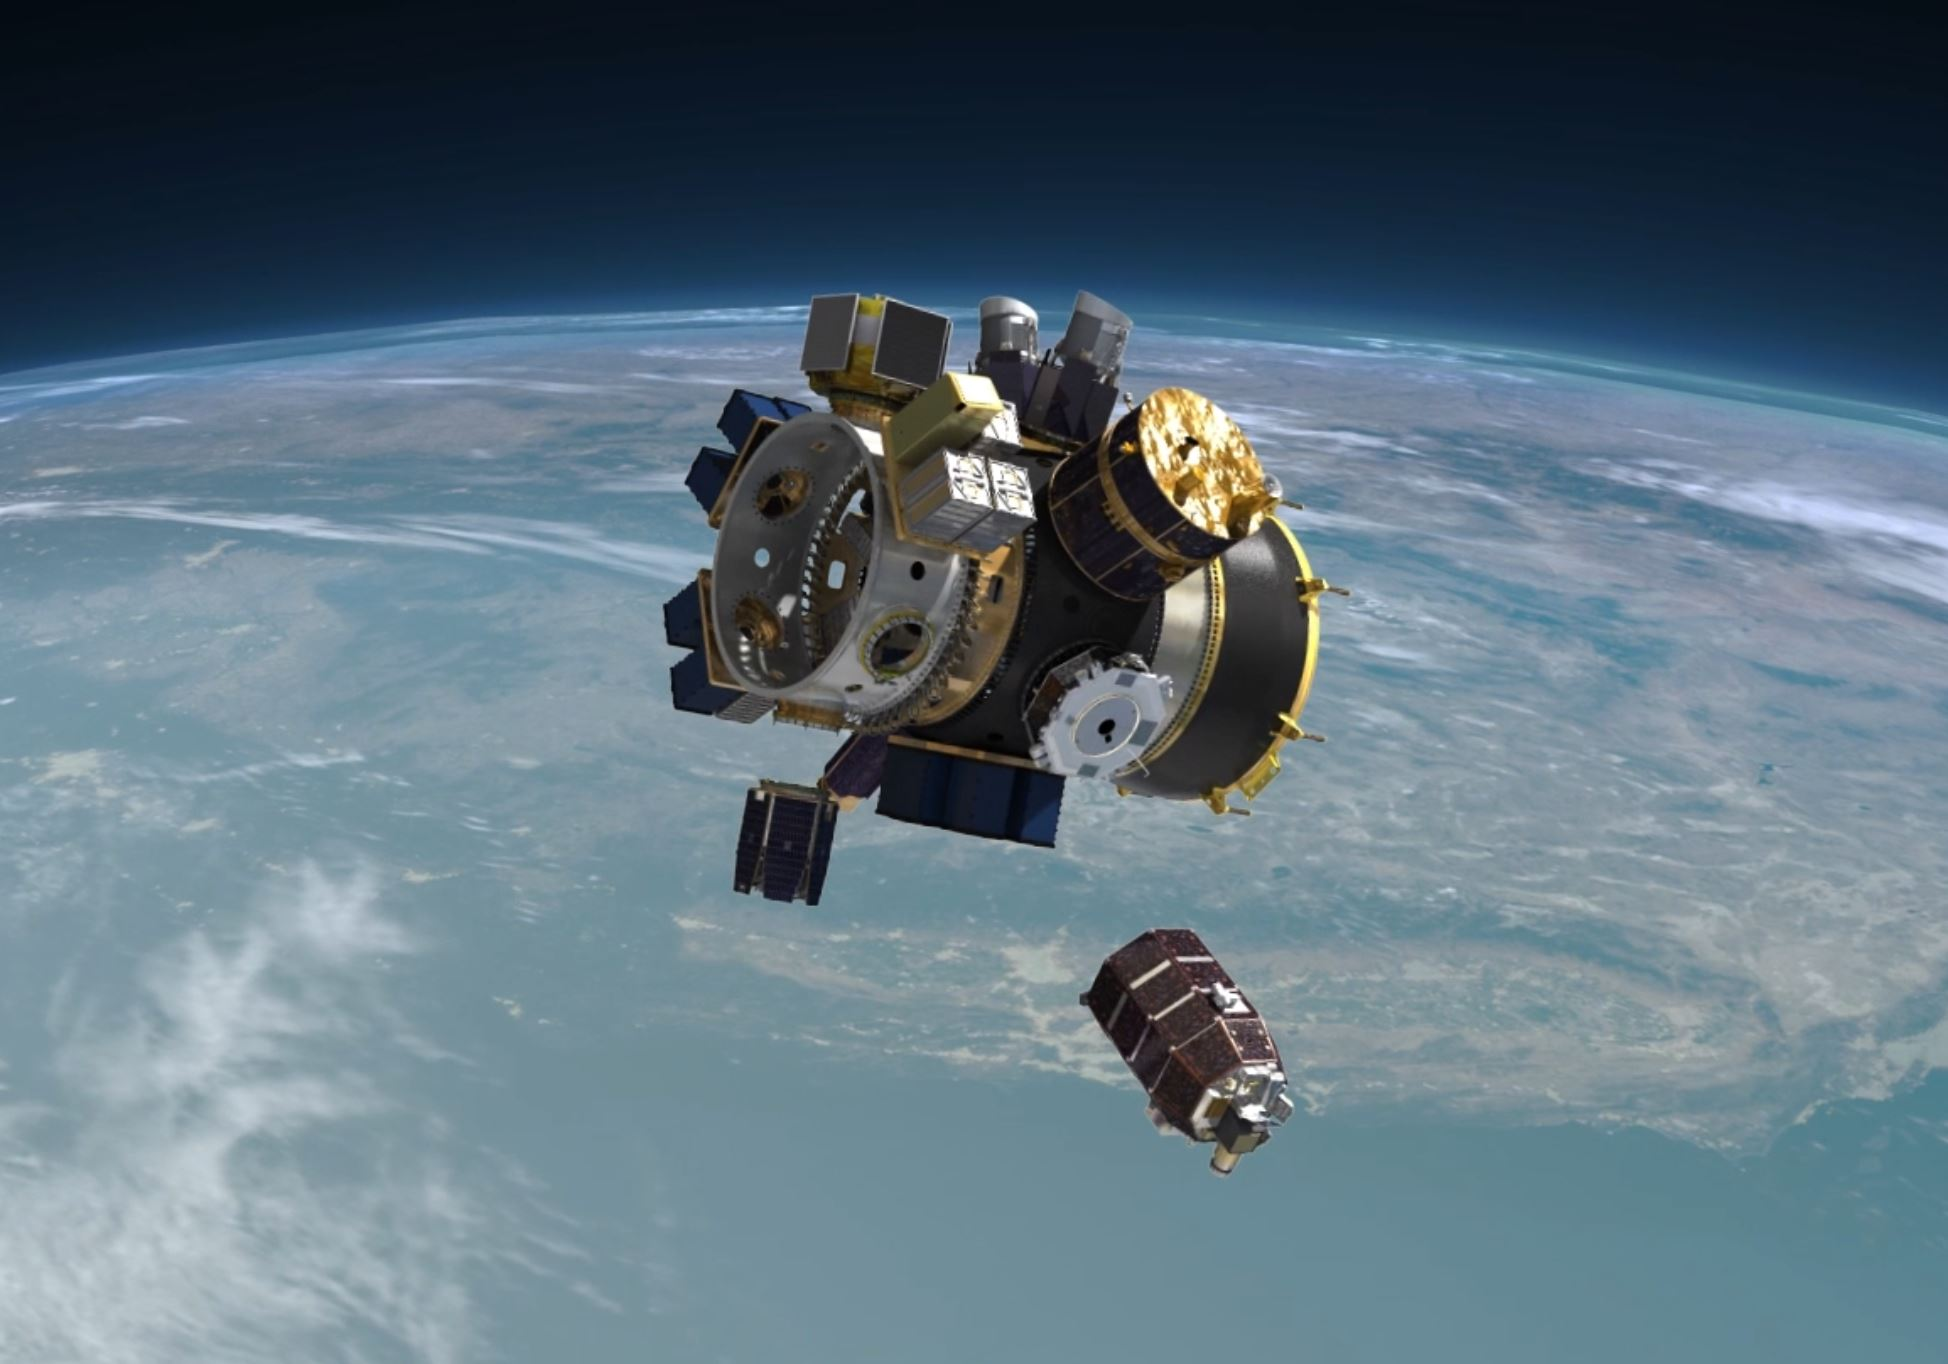 SSO-A Upper Free Flyer sep F9 S2 (Spaceflight) 2